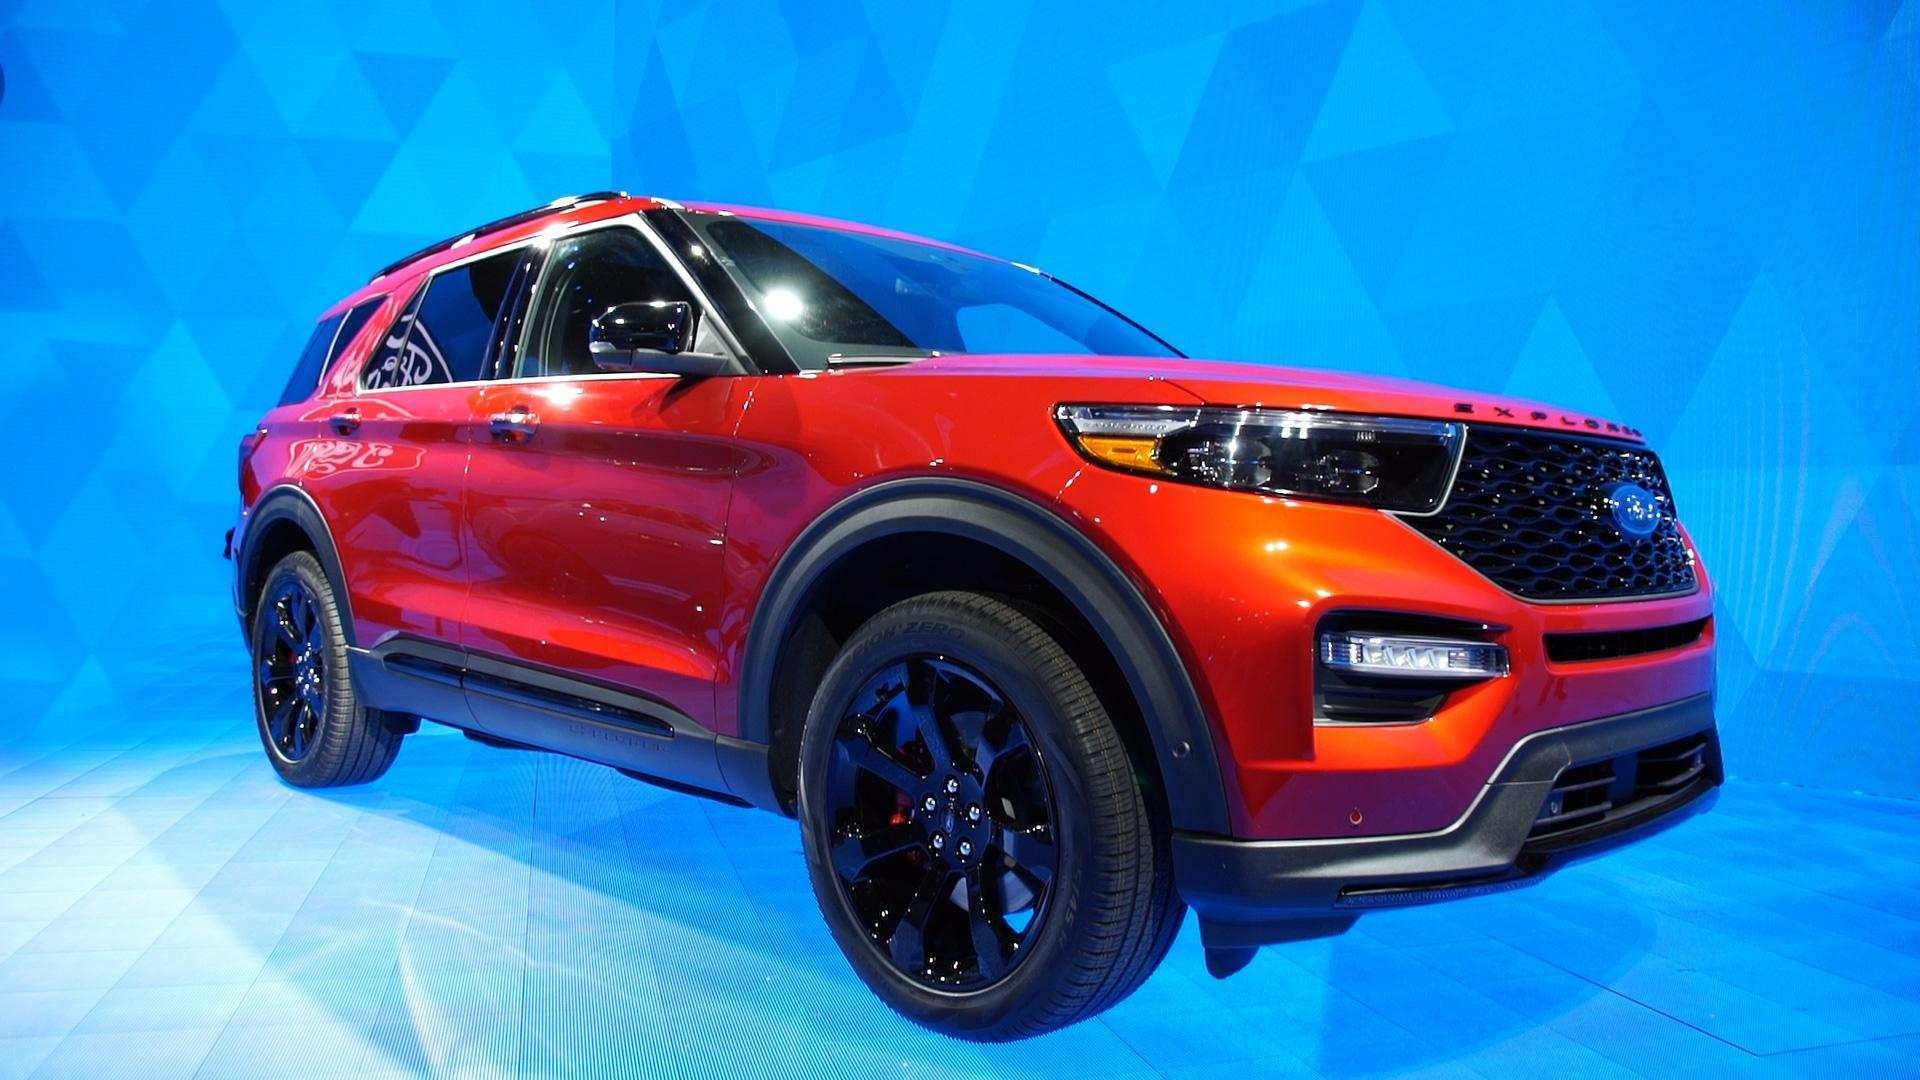 47 All New 2020 Ford Explorer Build And Price Performance and New Engine with 2020 Ford Explorer Build And Price